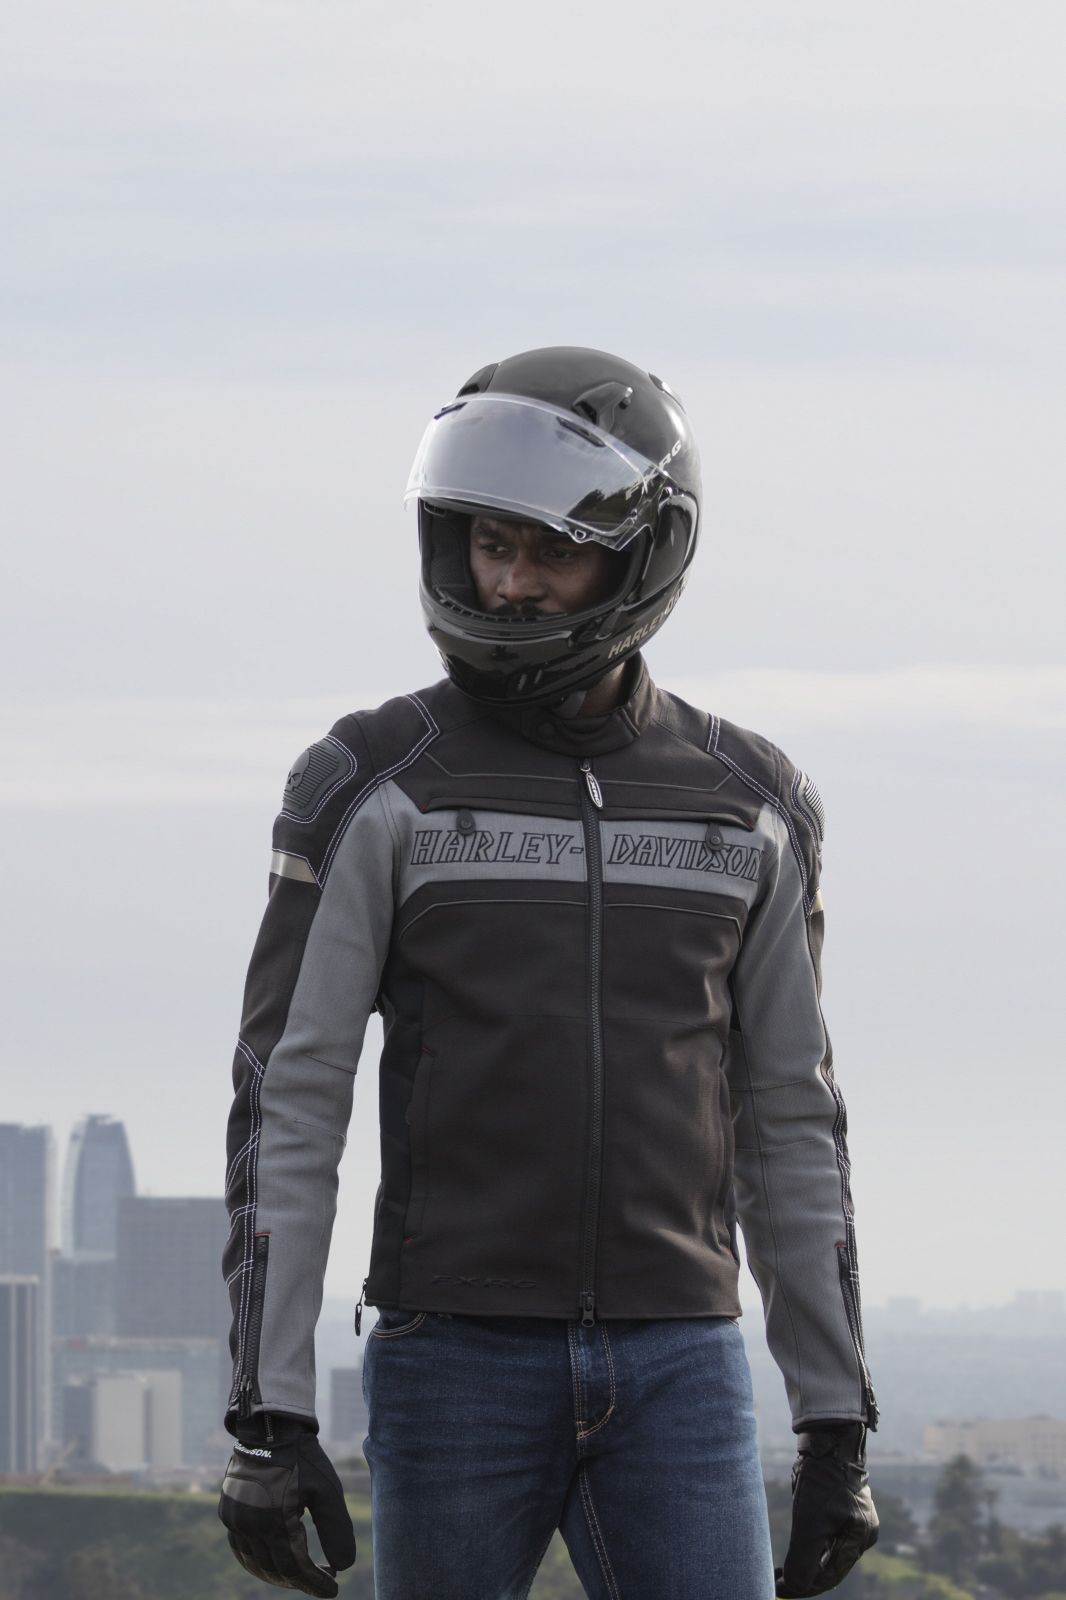 dcd2a2bd9 FXRG Riding Jacket with Coolcore Technology | FXRG Collection ...